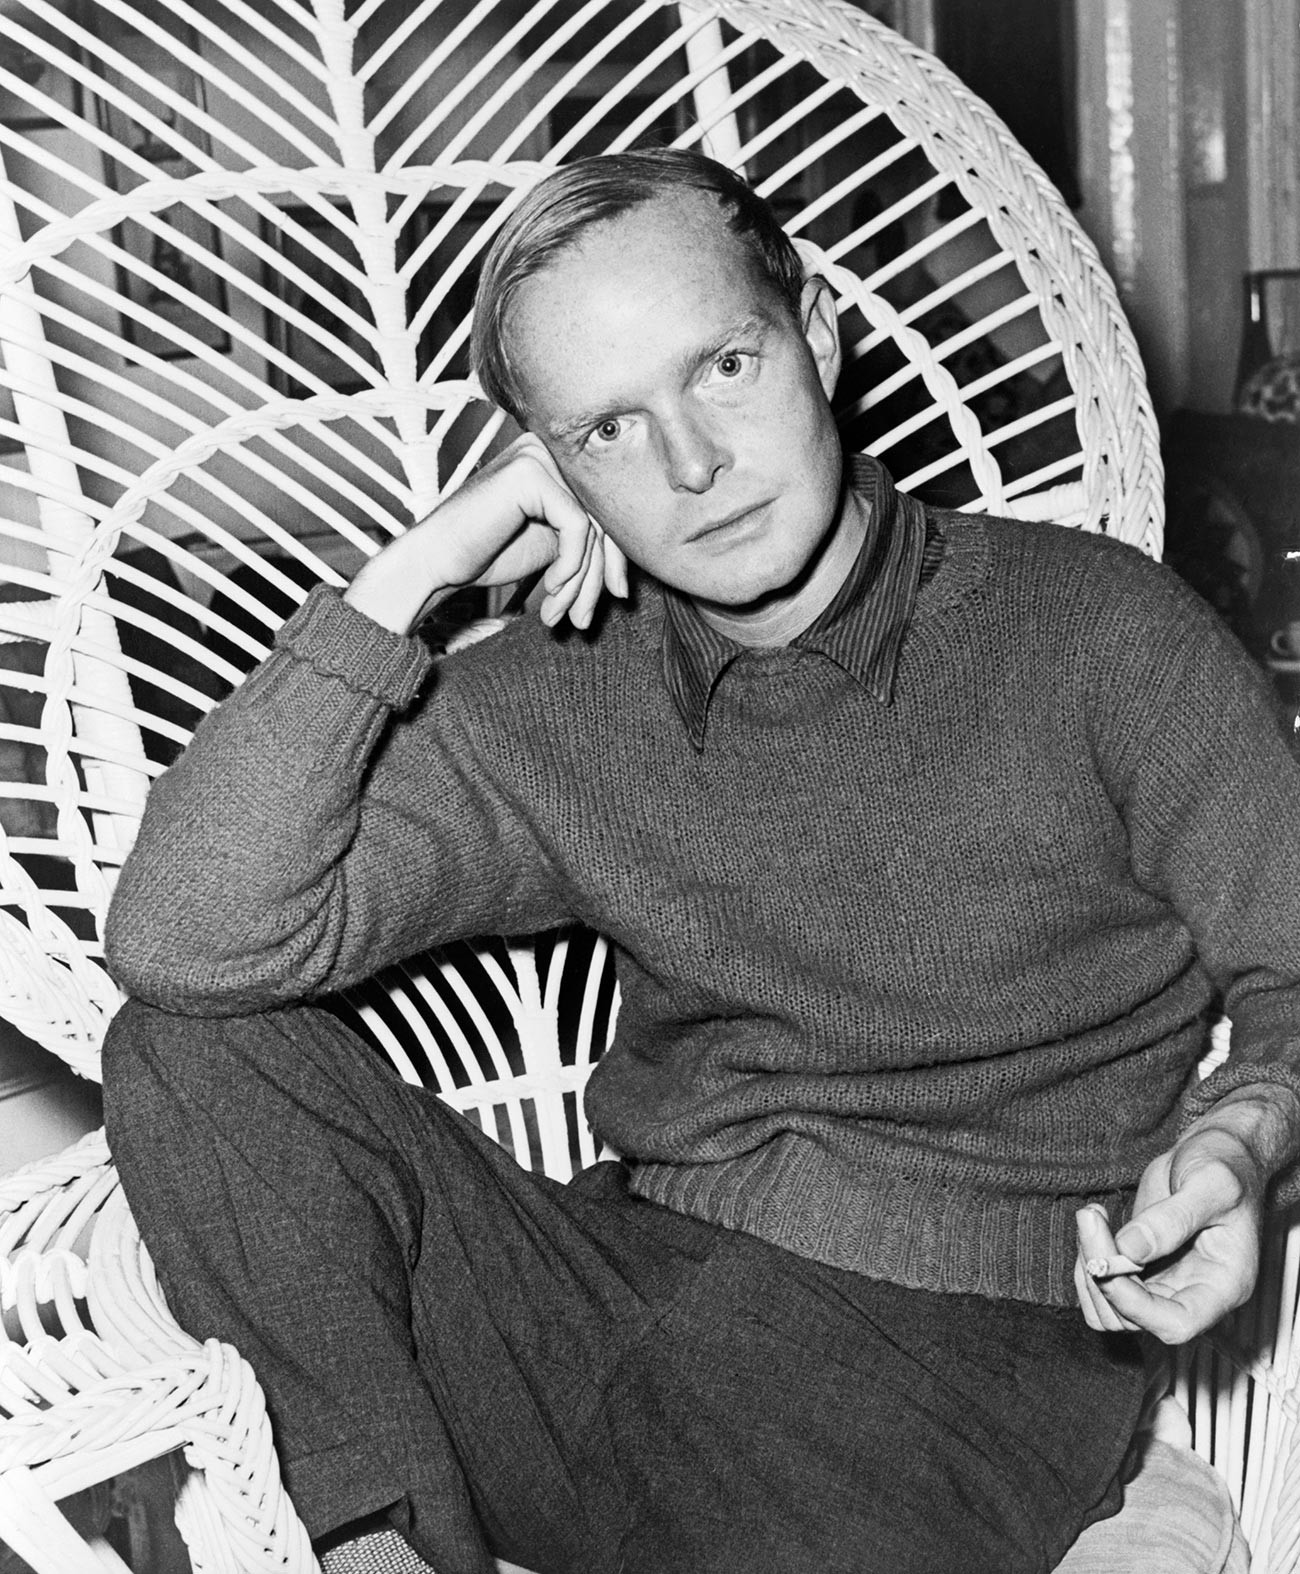 Capote's visit to the USSR in the 1950s was eye-opening.